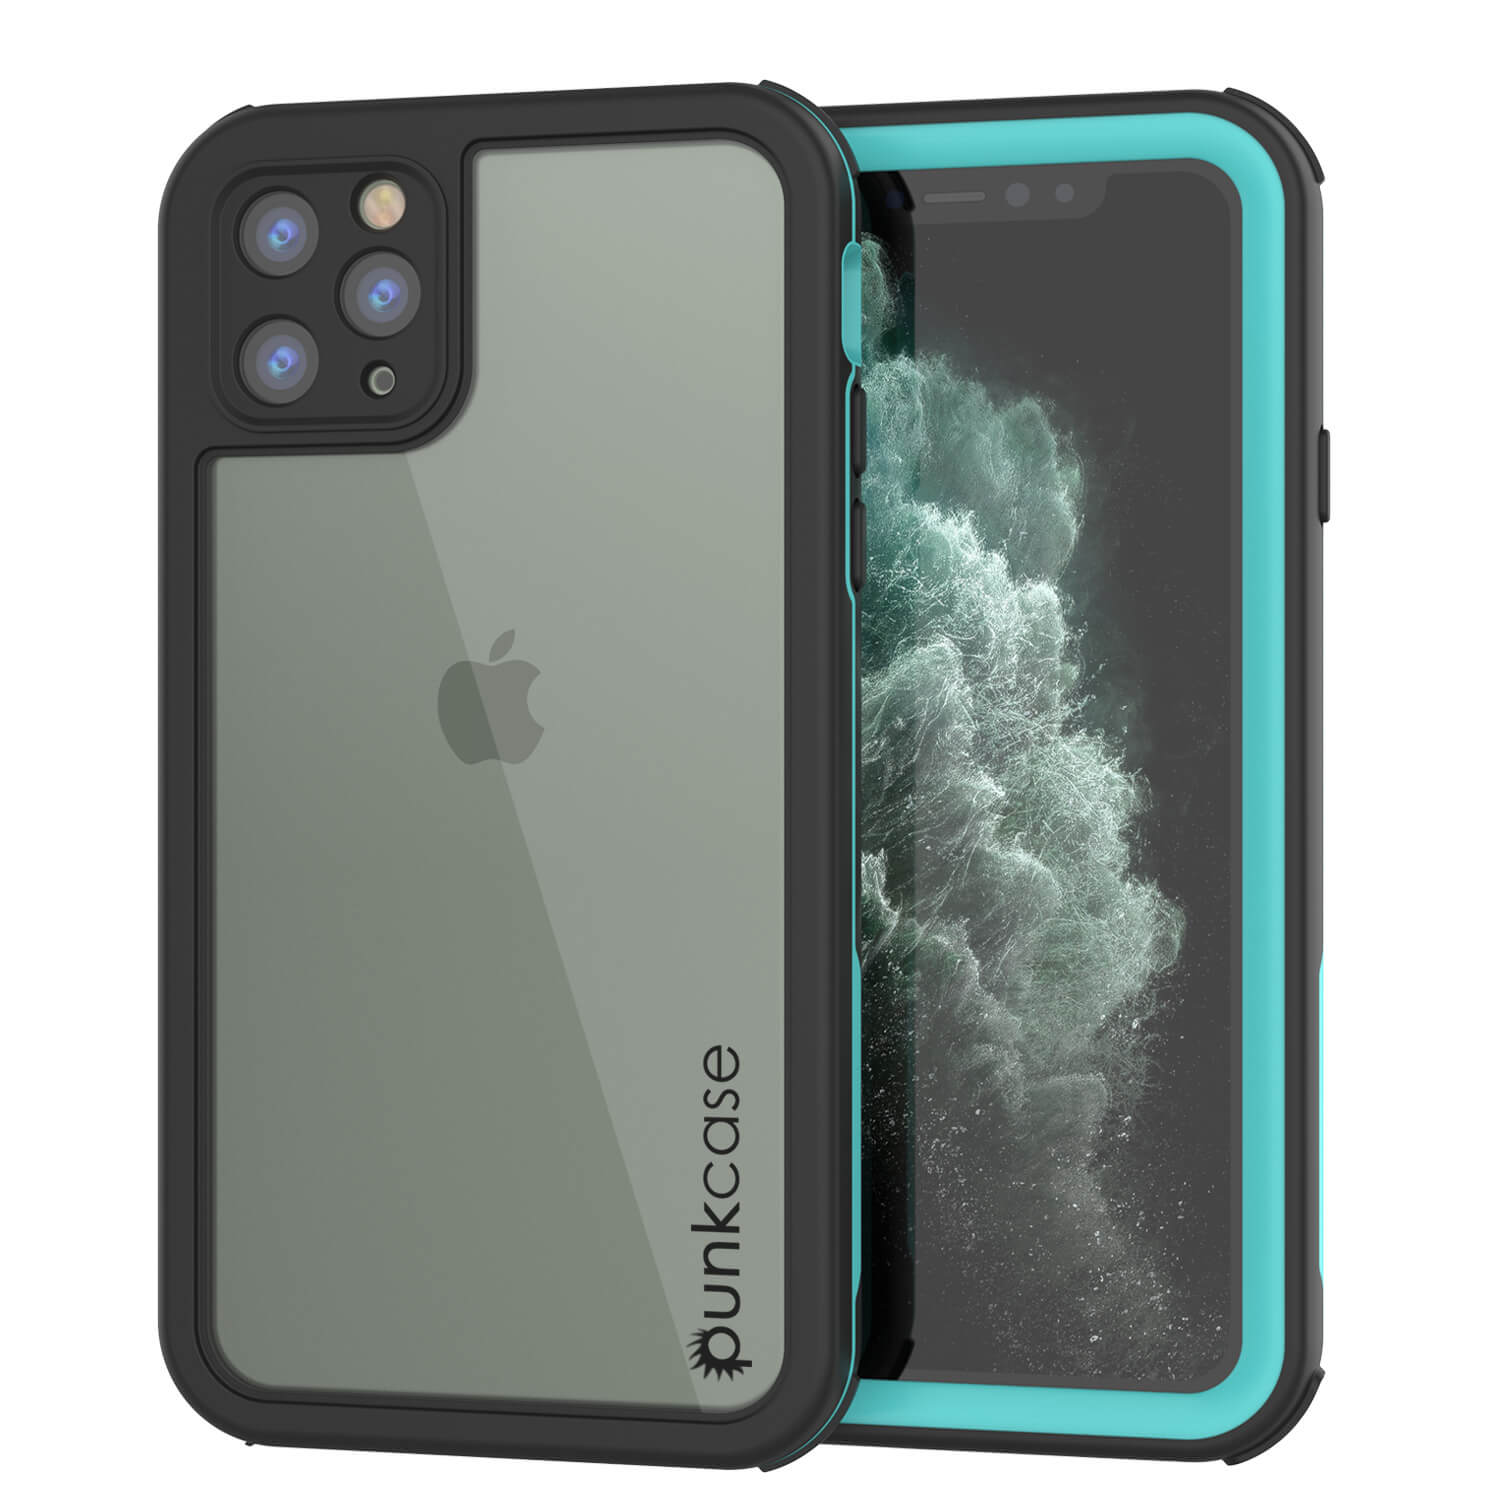 iPhone 11 Pro Max Waterproof IP68 Case, Punkcase [teal] [Rapture Series]  W/Built in Screen Protector